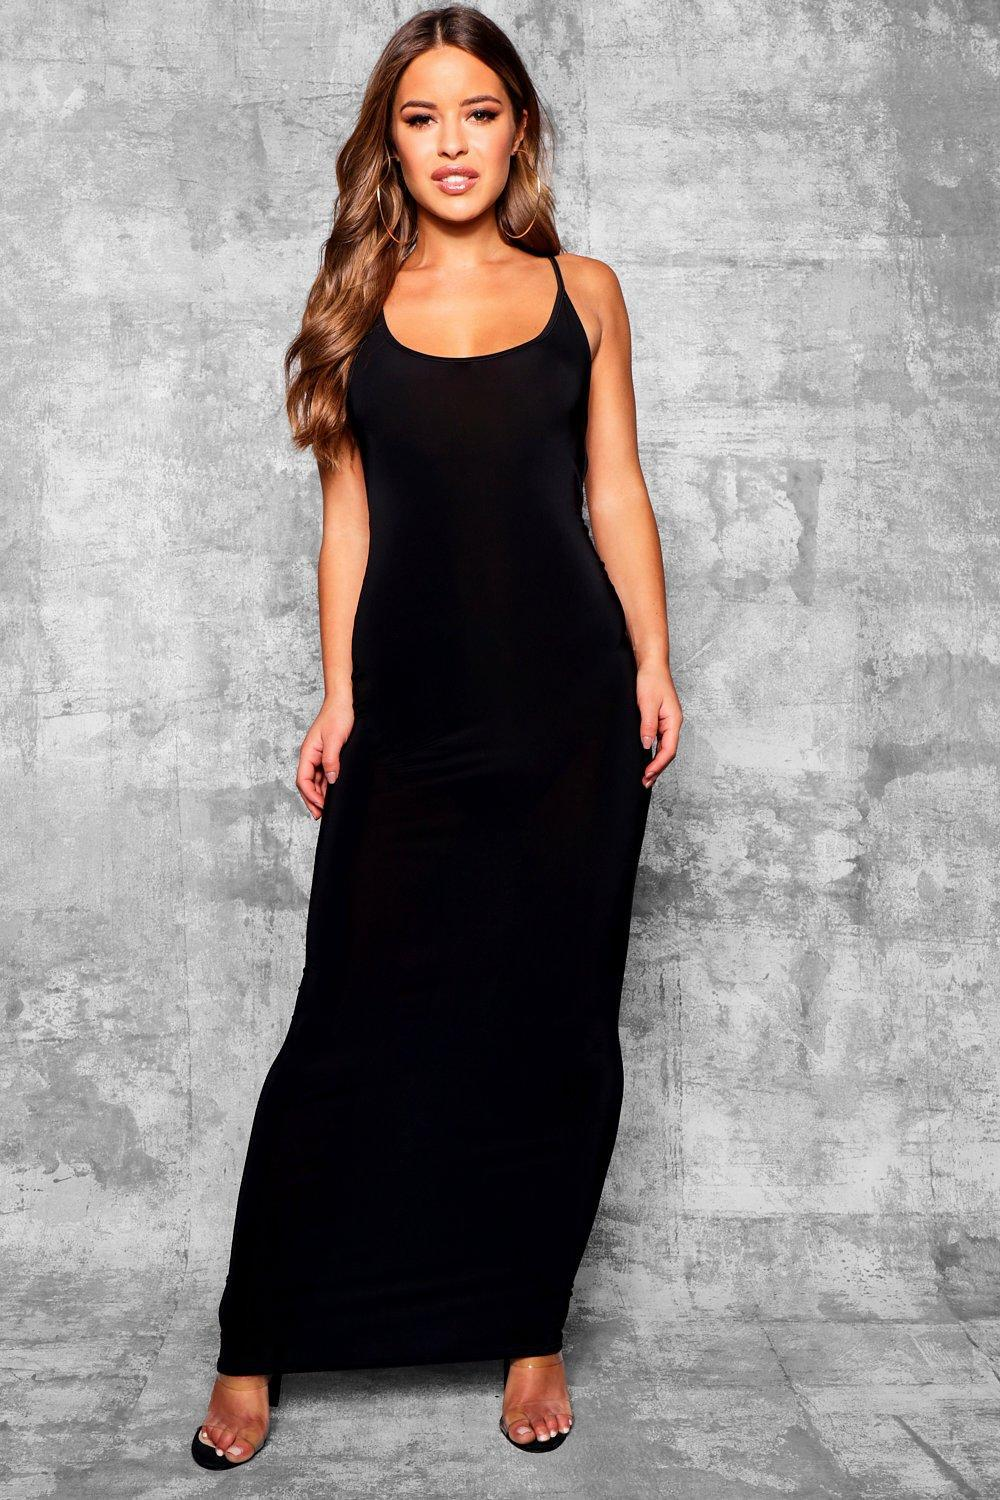 Boohoo Petite Skinny Open Back Detail Maxi Dress Sale Free Shipping qhgNWTI